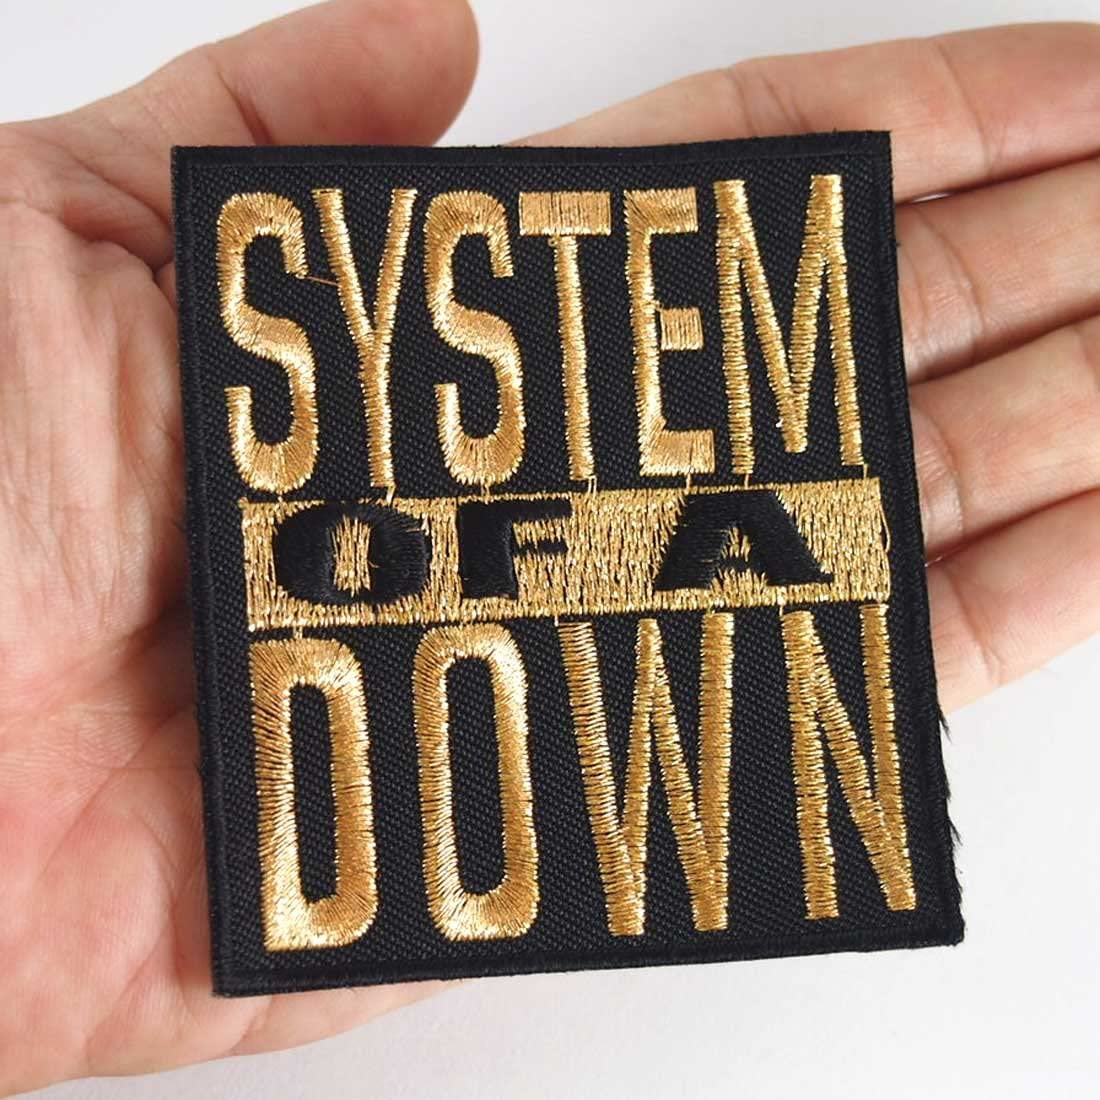 System of a Down heavy metal punk rock band Iron On Patches Gold # WITH FREE GIFT by Eddyshopping